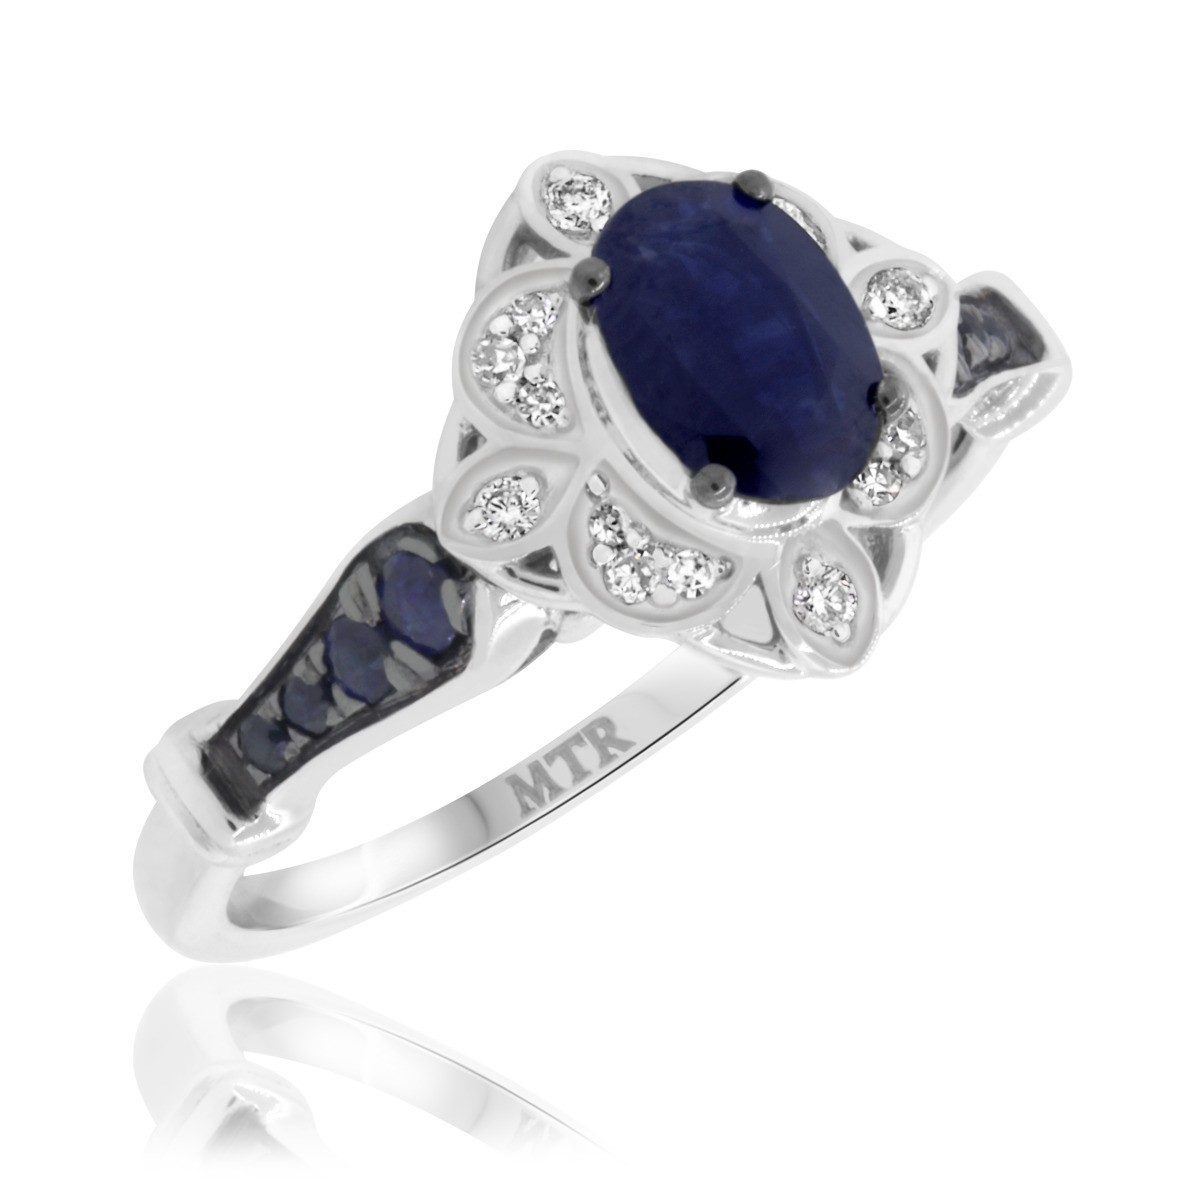 1 Carat T.W. Sapphire and Diamond Engagement Ring 14K White Gold